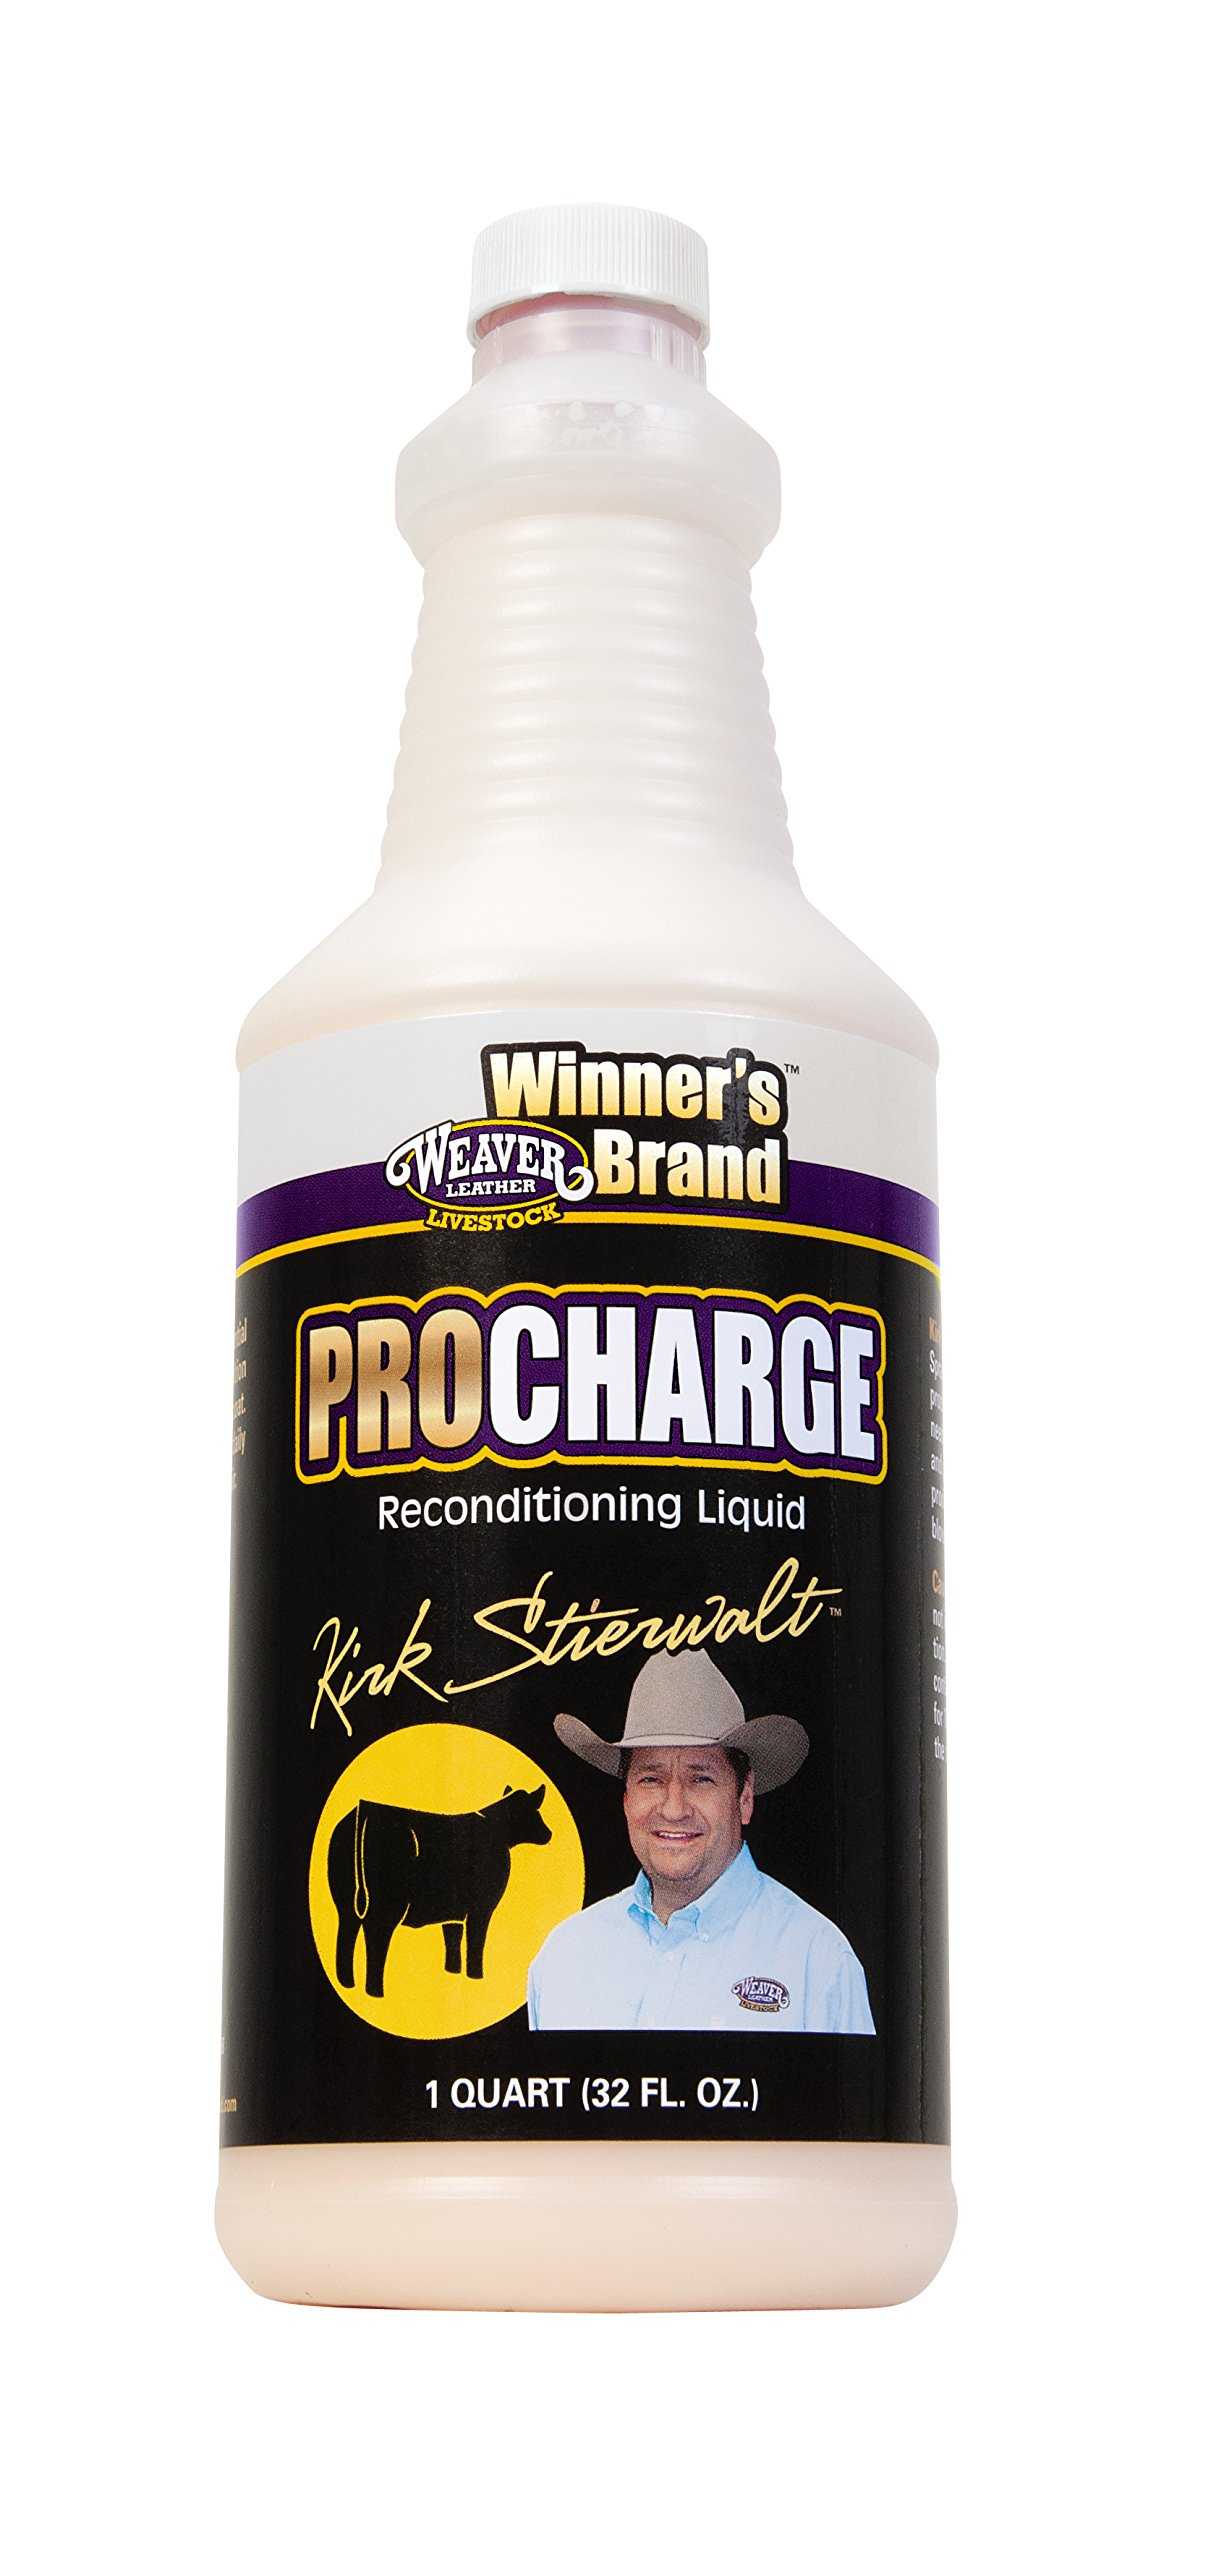 Weaver Leather Livestock Stierwalt ProCharge Reconditioning Liquid